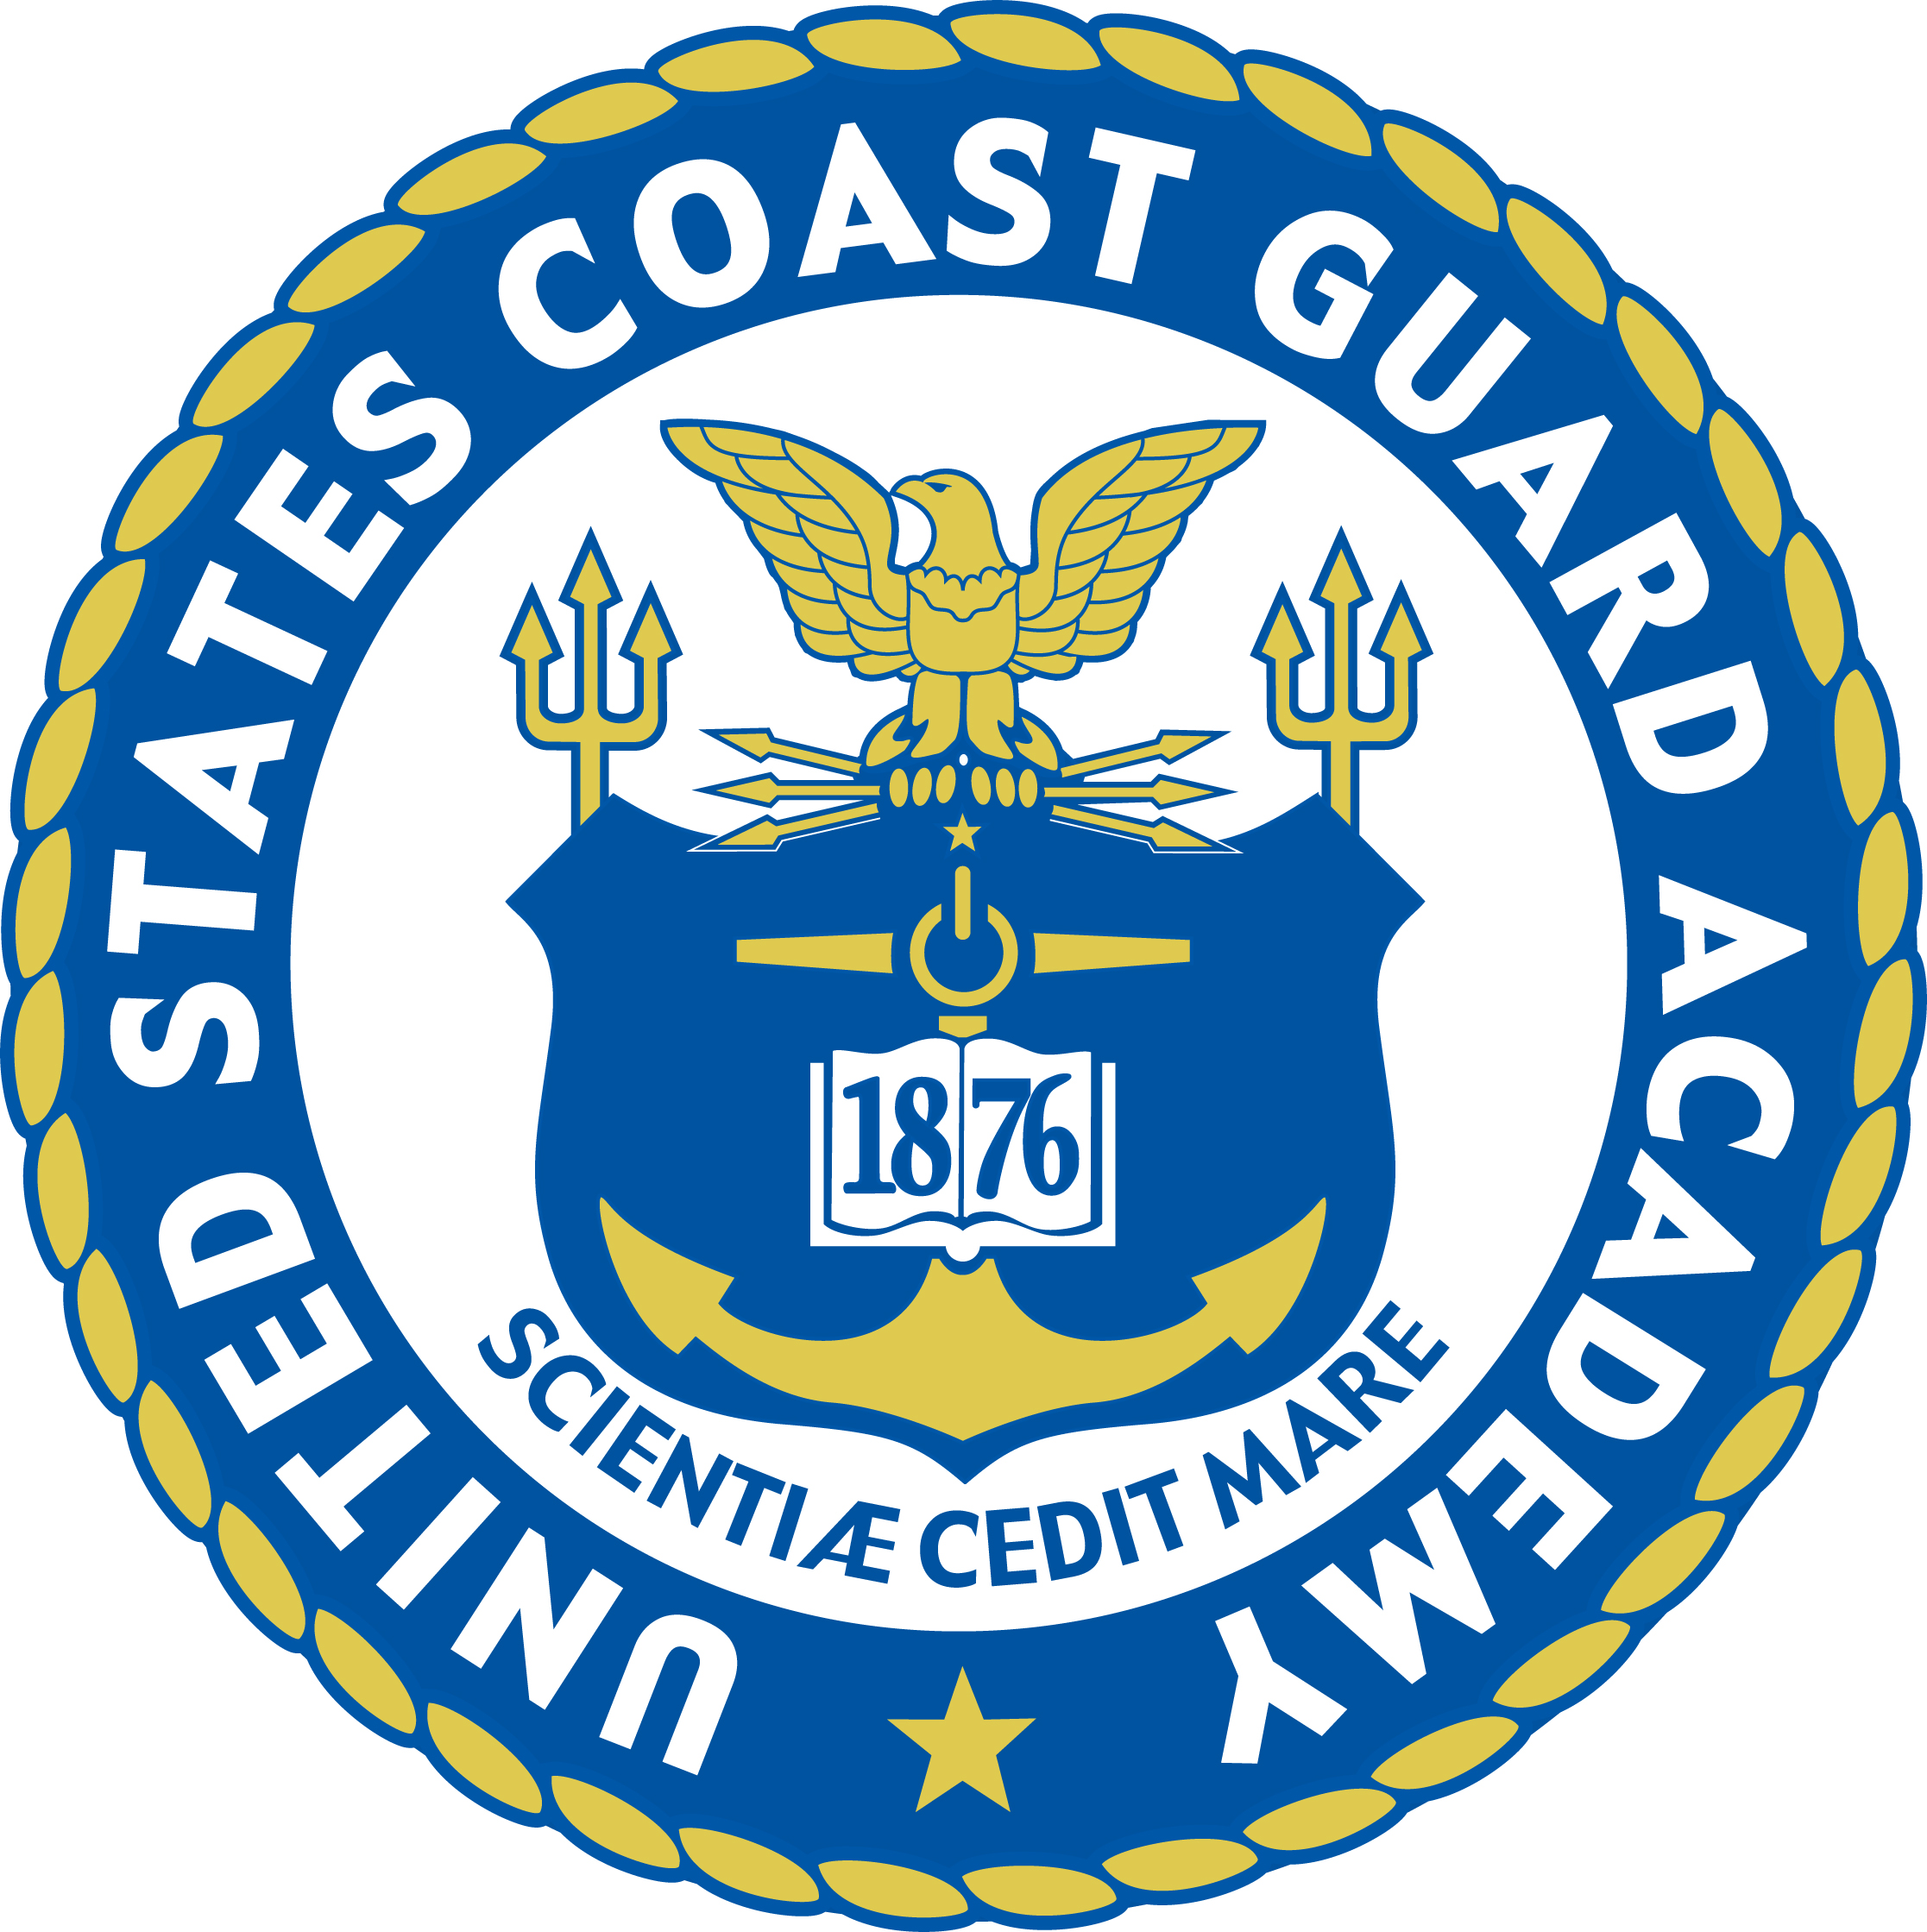 F%2ffe%2funited states coast guard academy seal